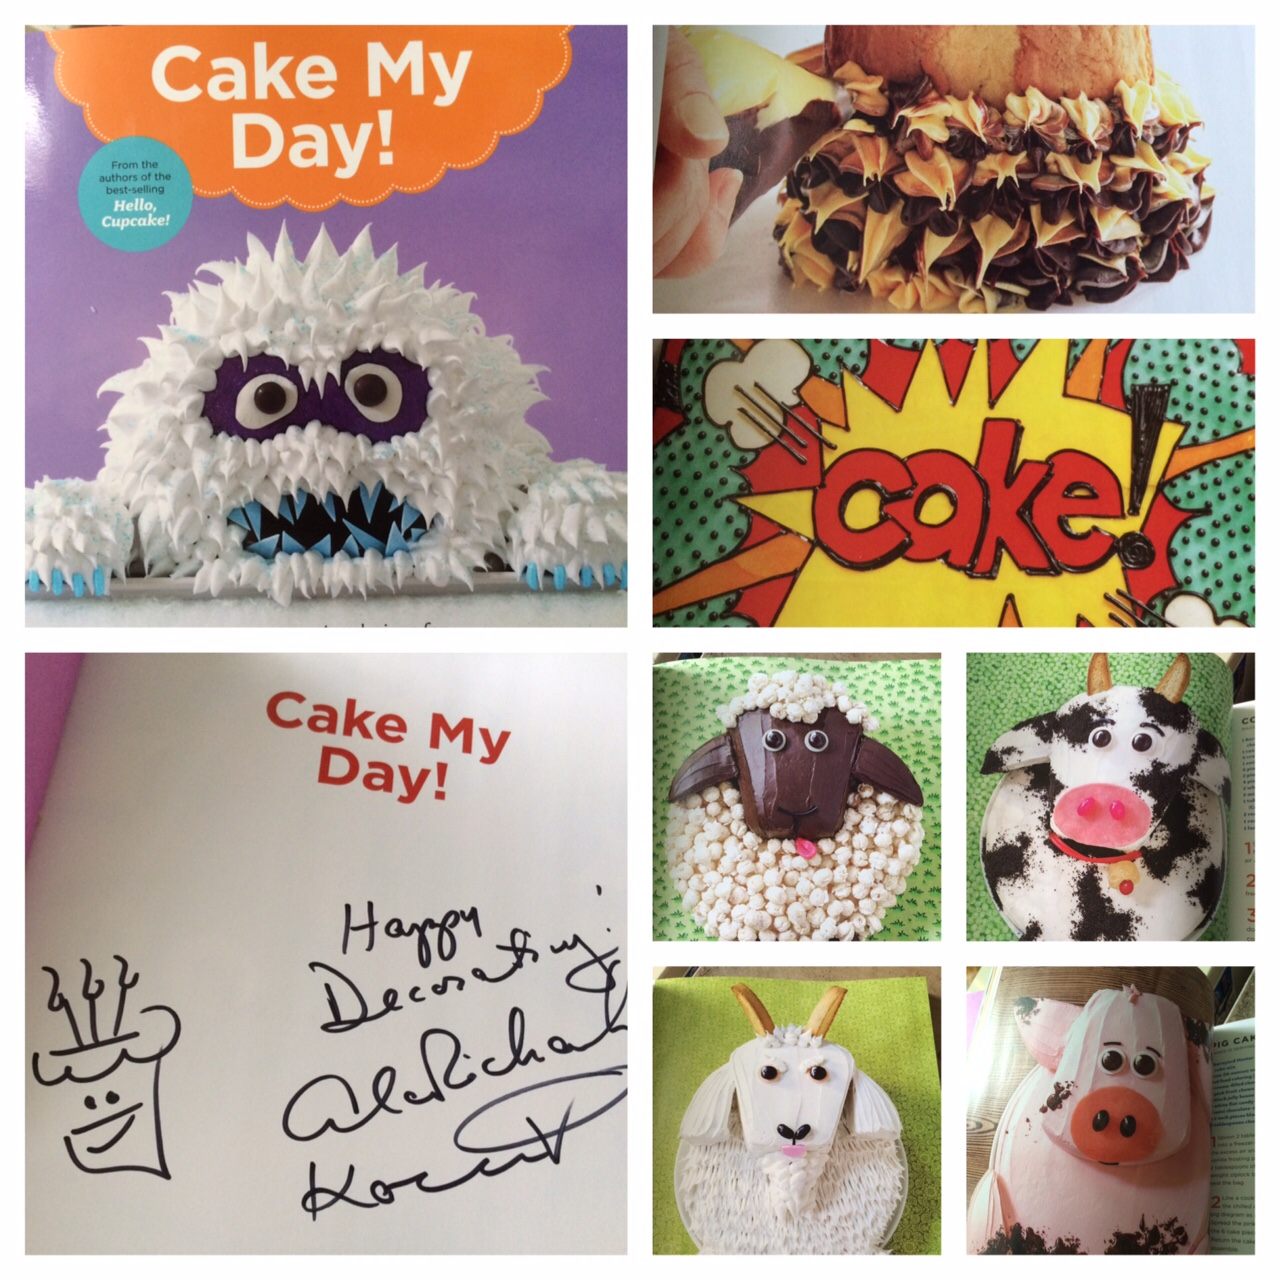 Cake my day book